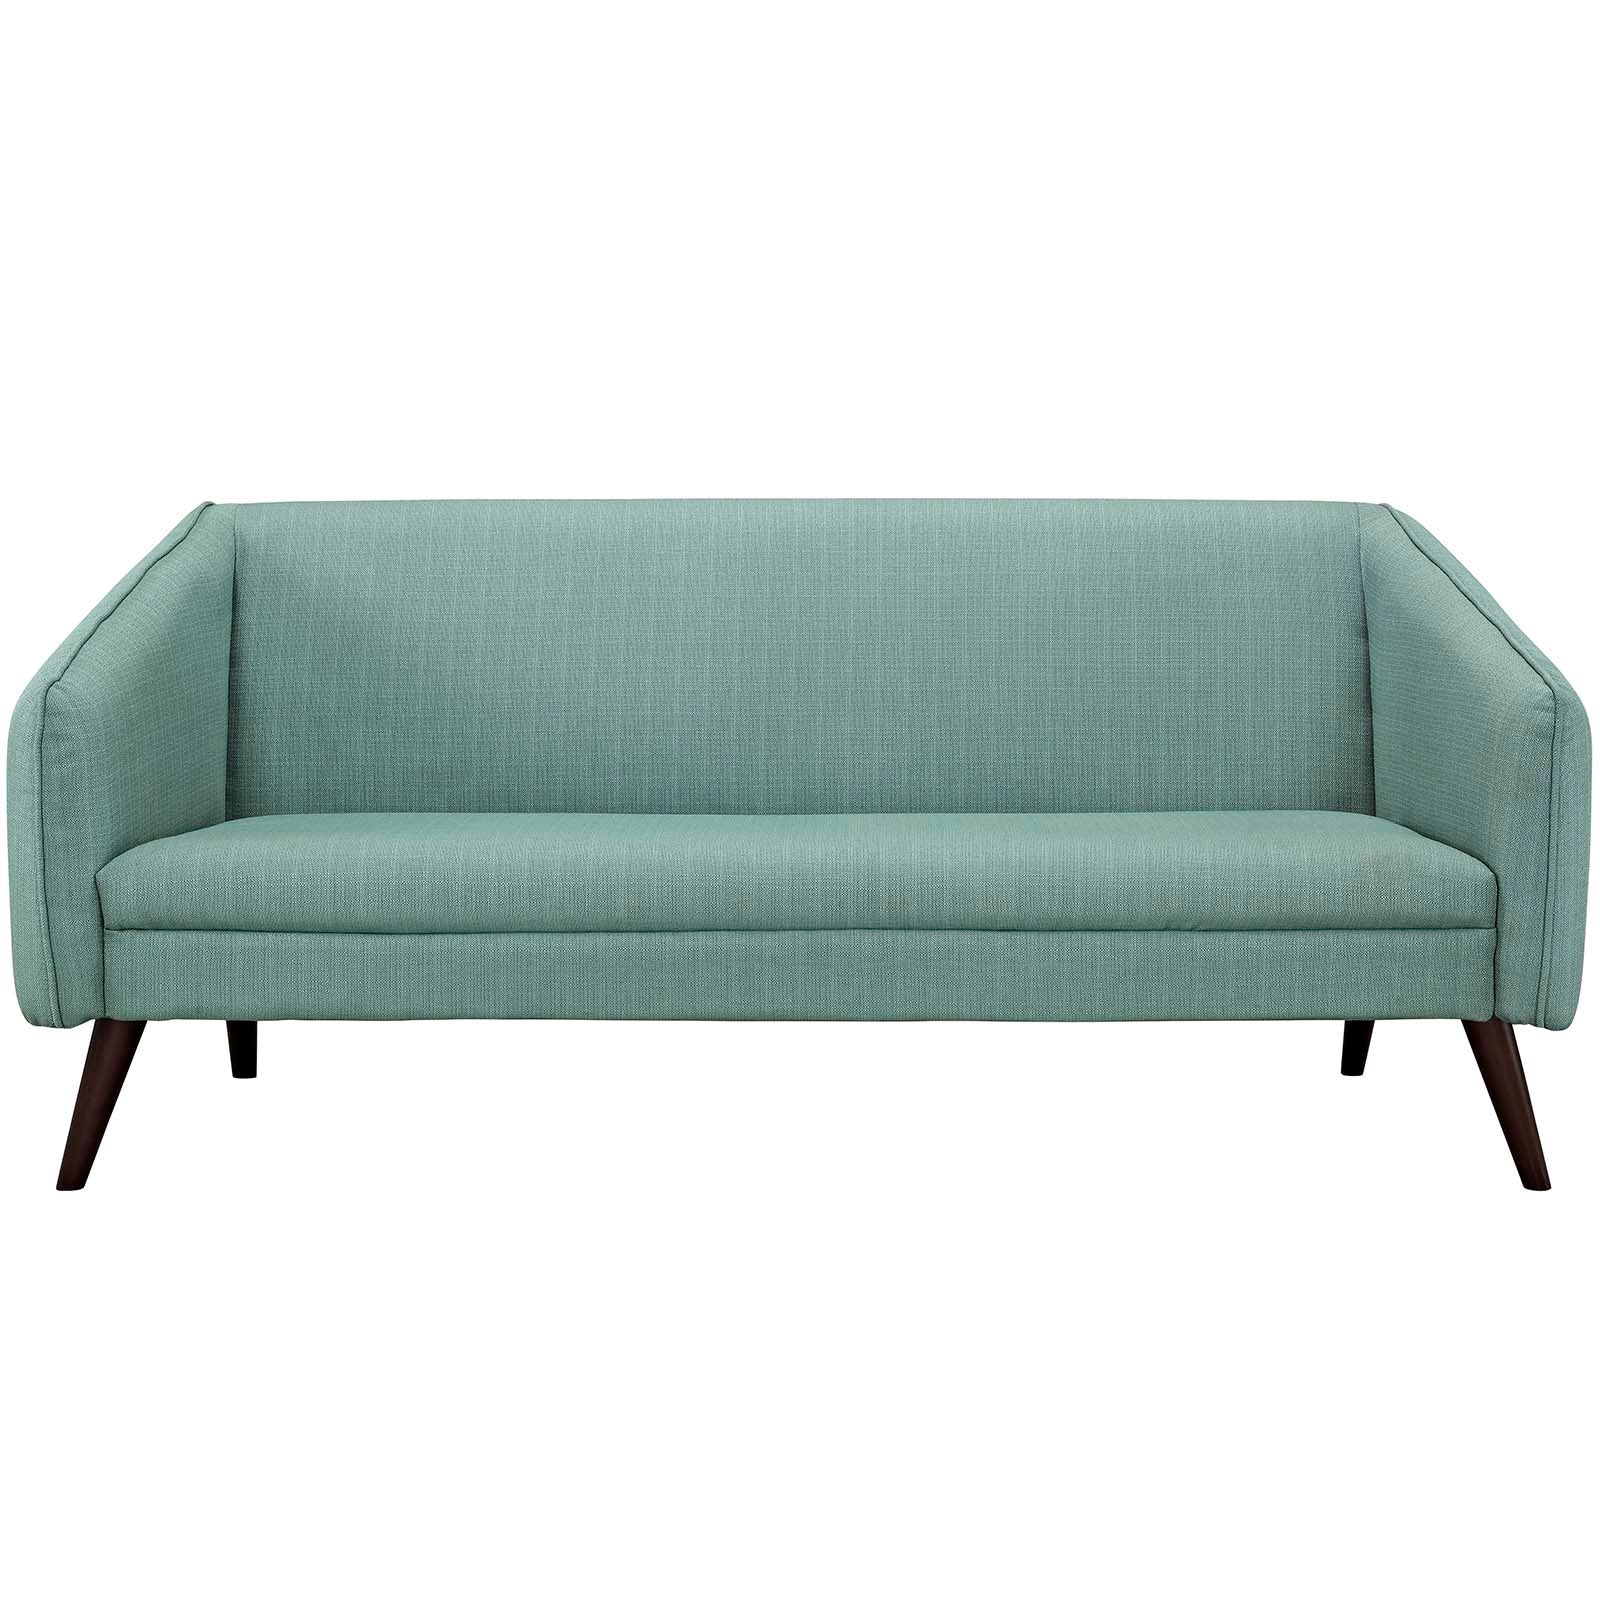 Slide Upholstered Fabric Sofa